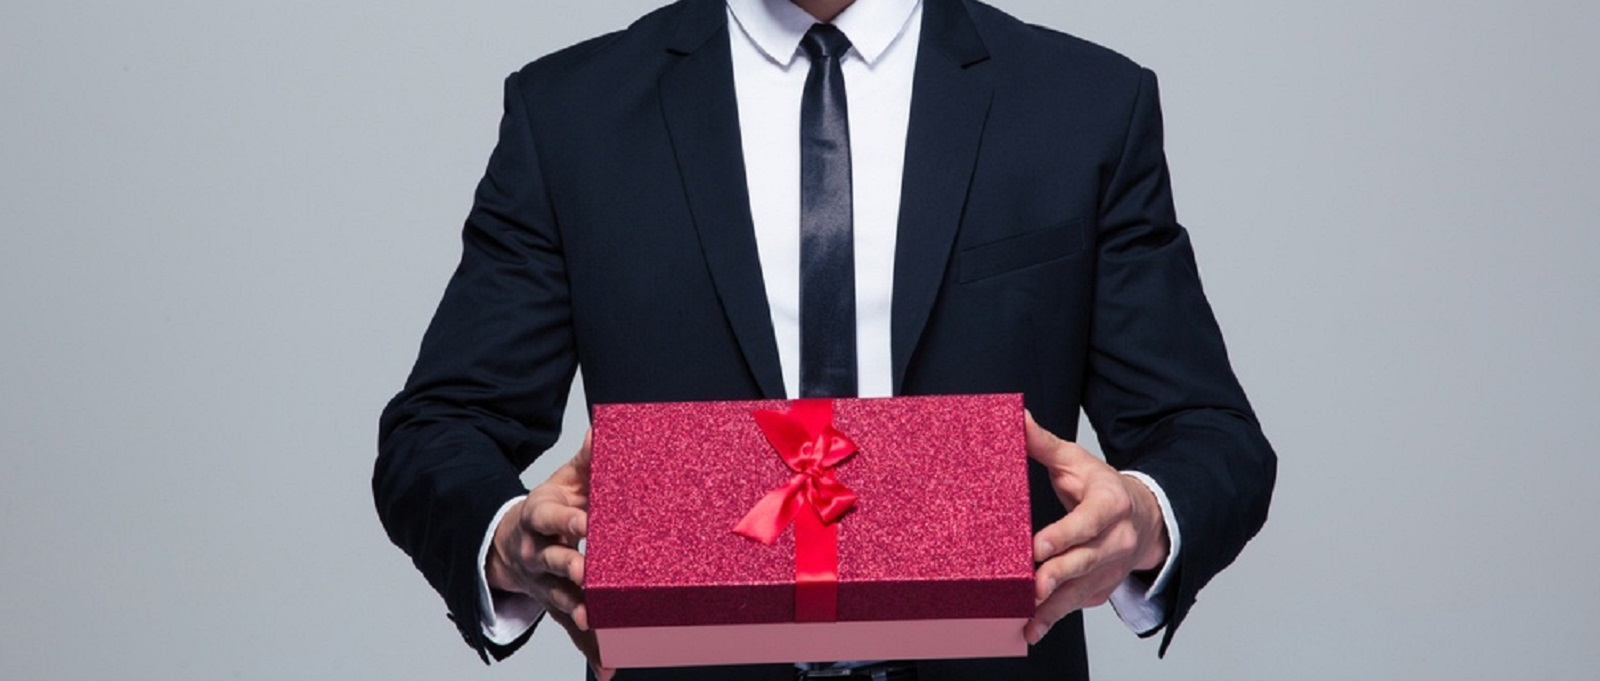 Corporate-Product-Gifts